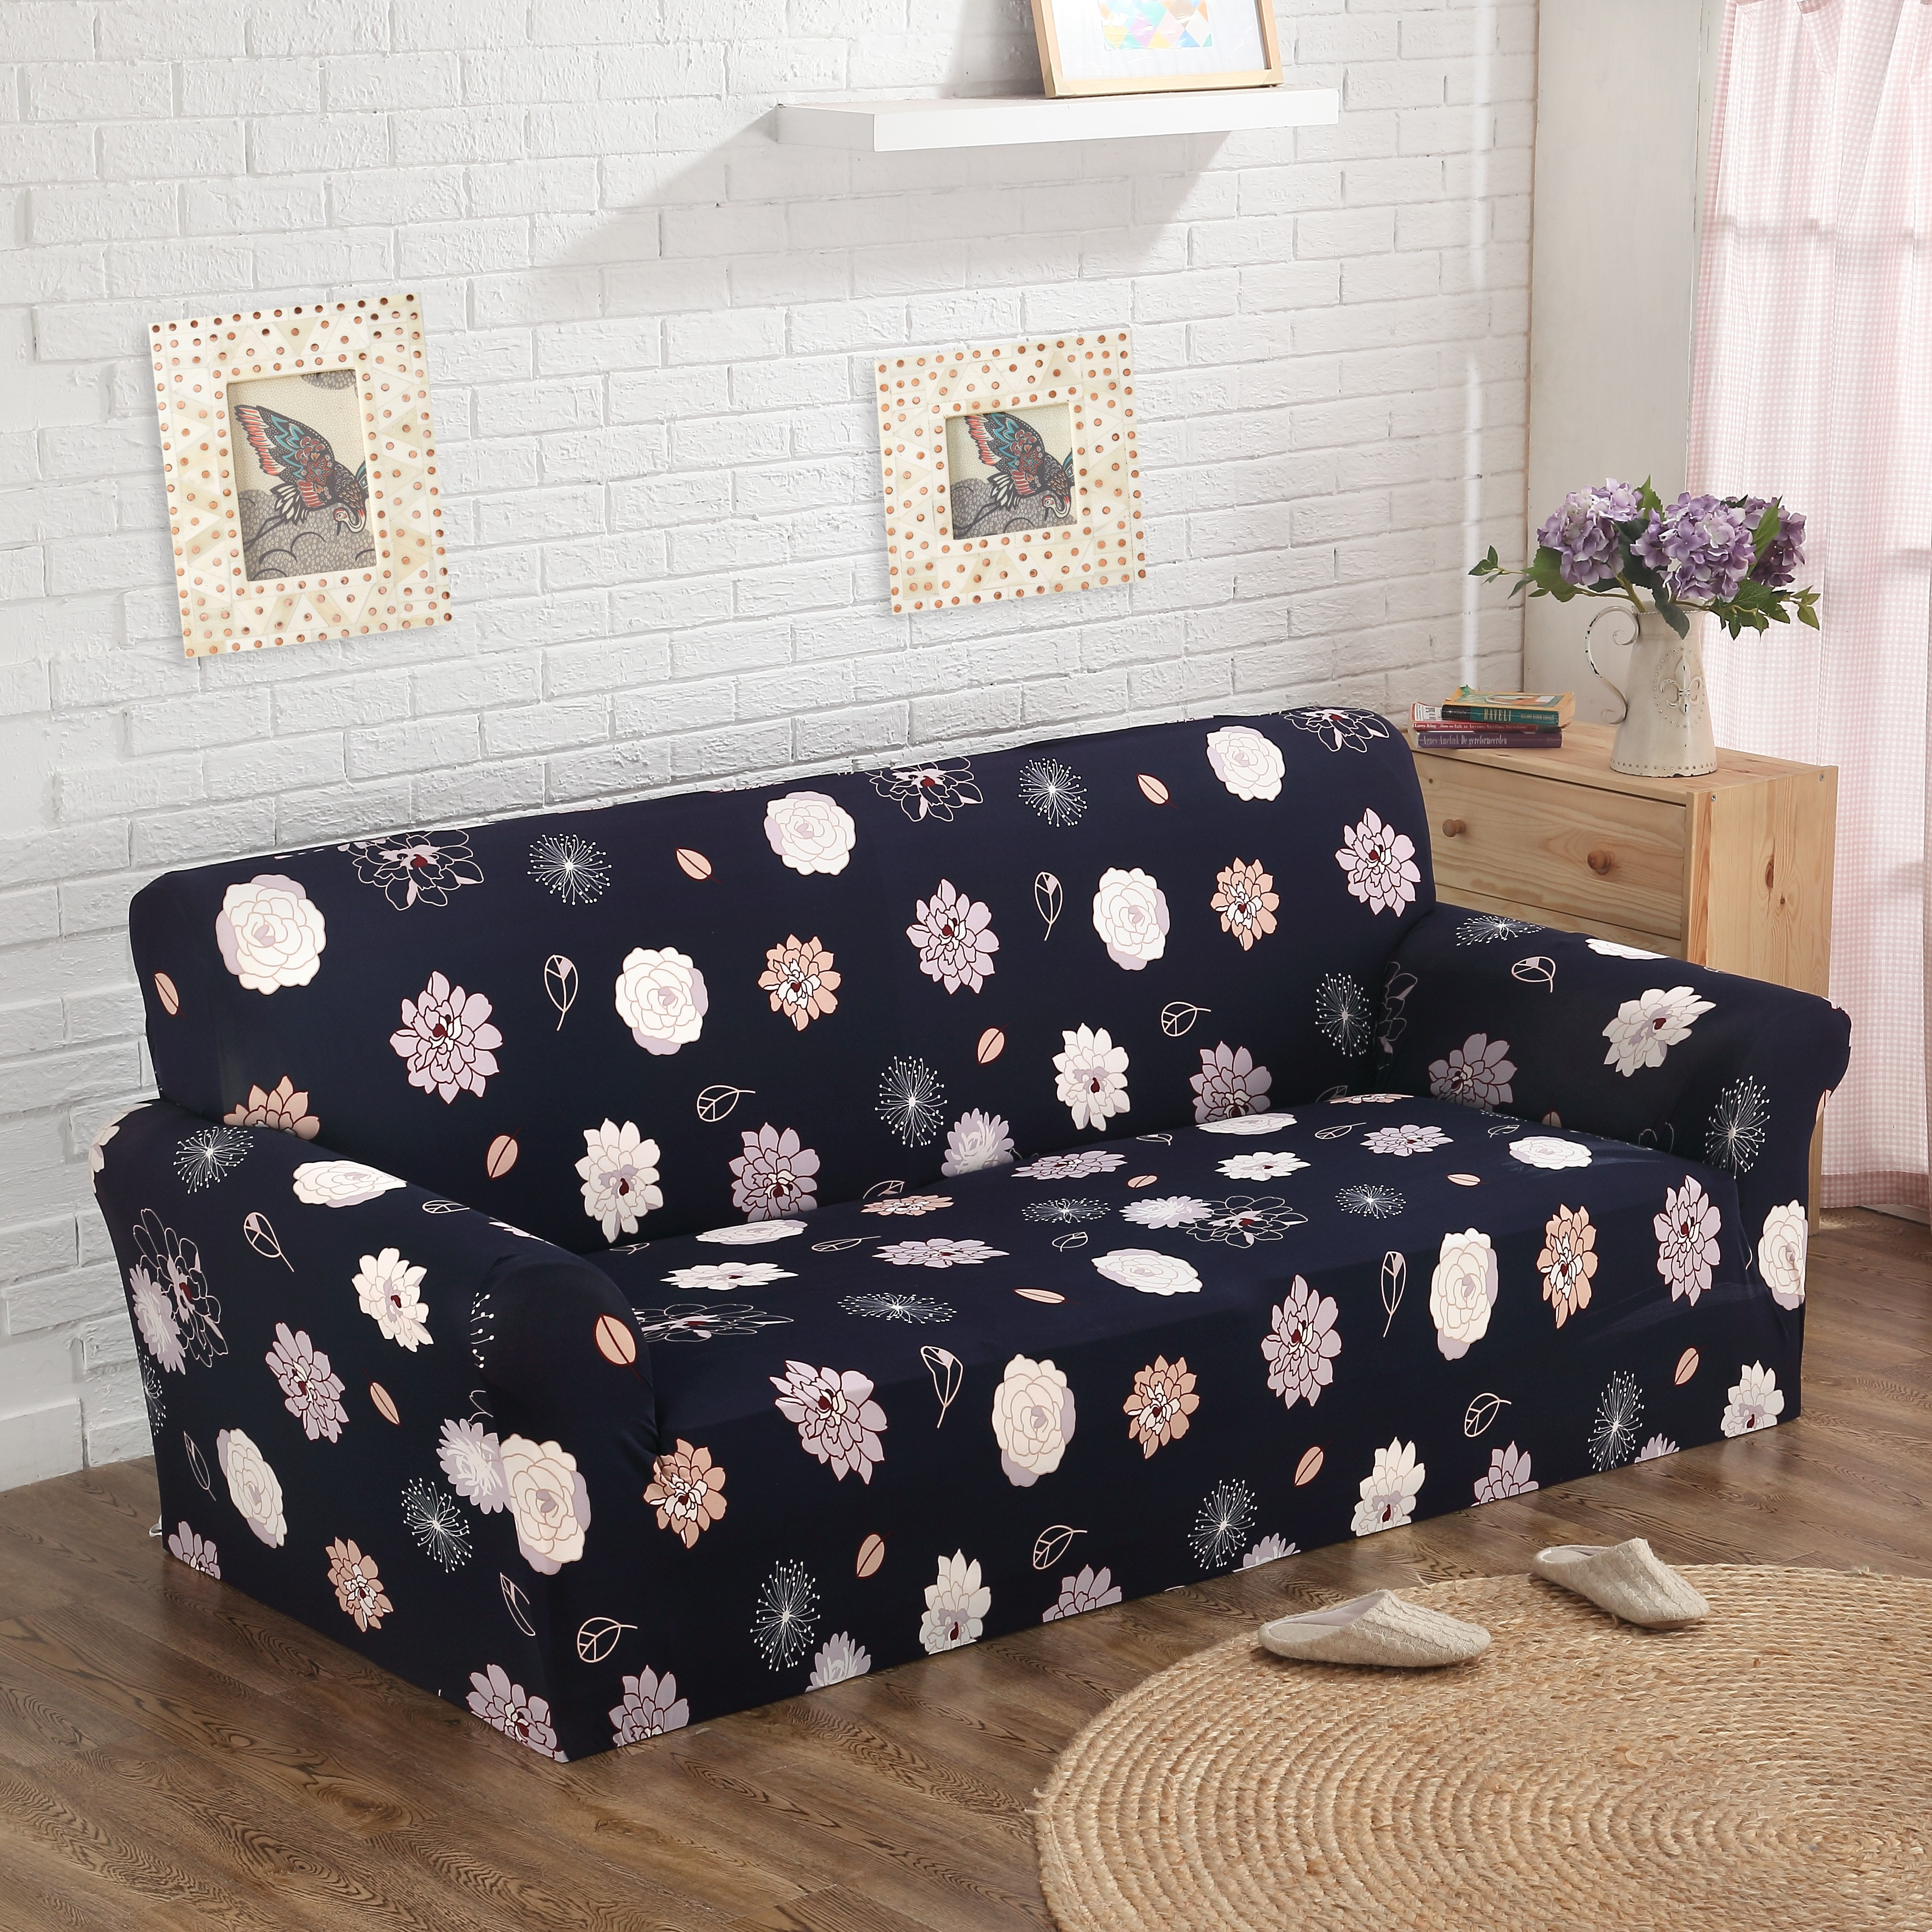 line Shop Cheap couch cover with flowers pattren 100% polyester